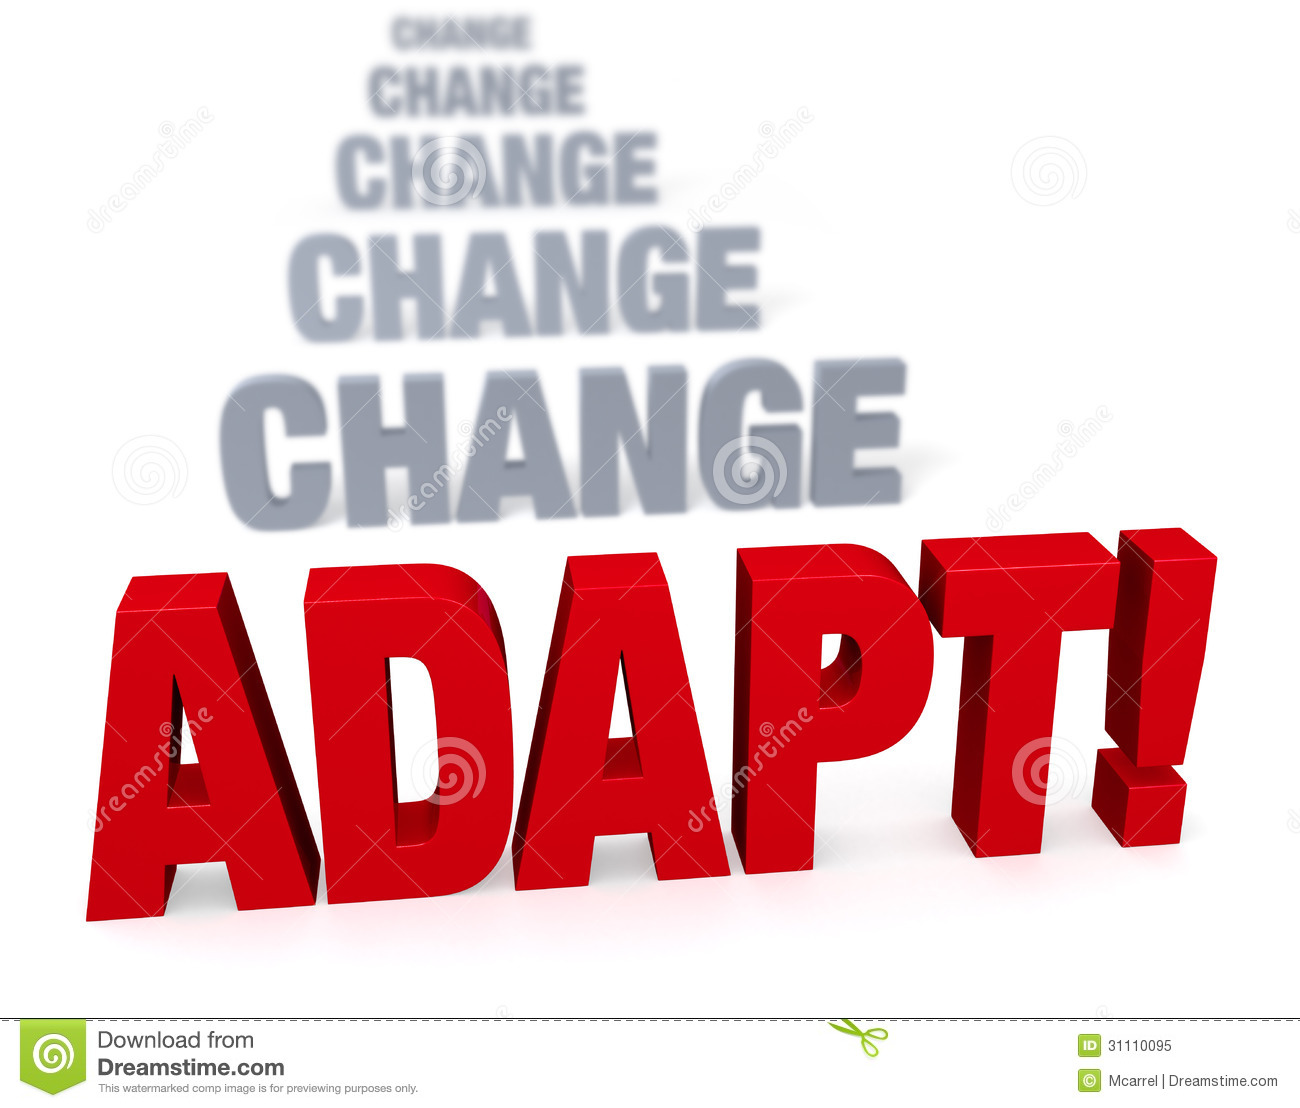 Forum on this topic: How to Adapt to Changes in a , how-to-adapt-to-changes-in-a/